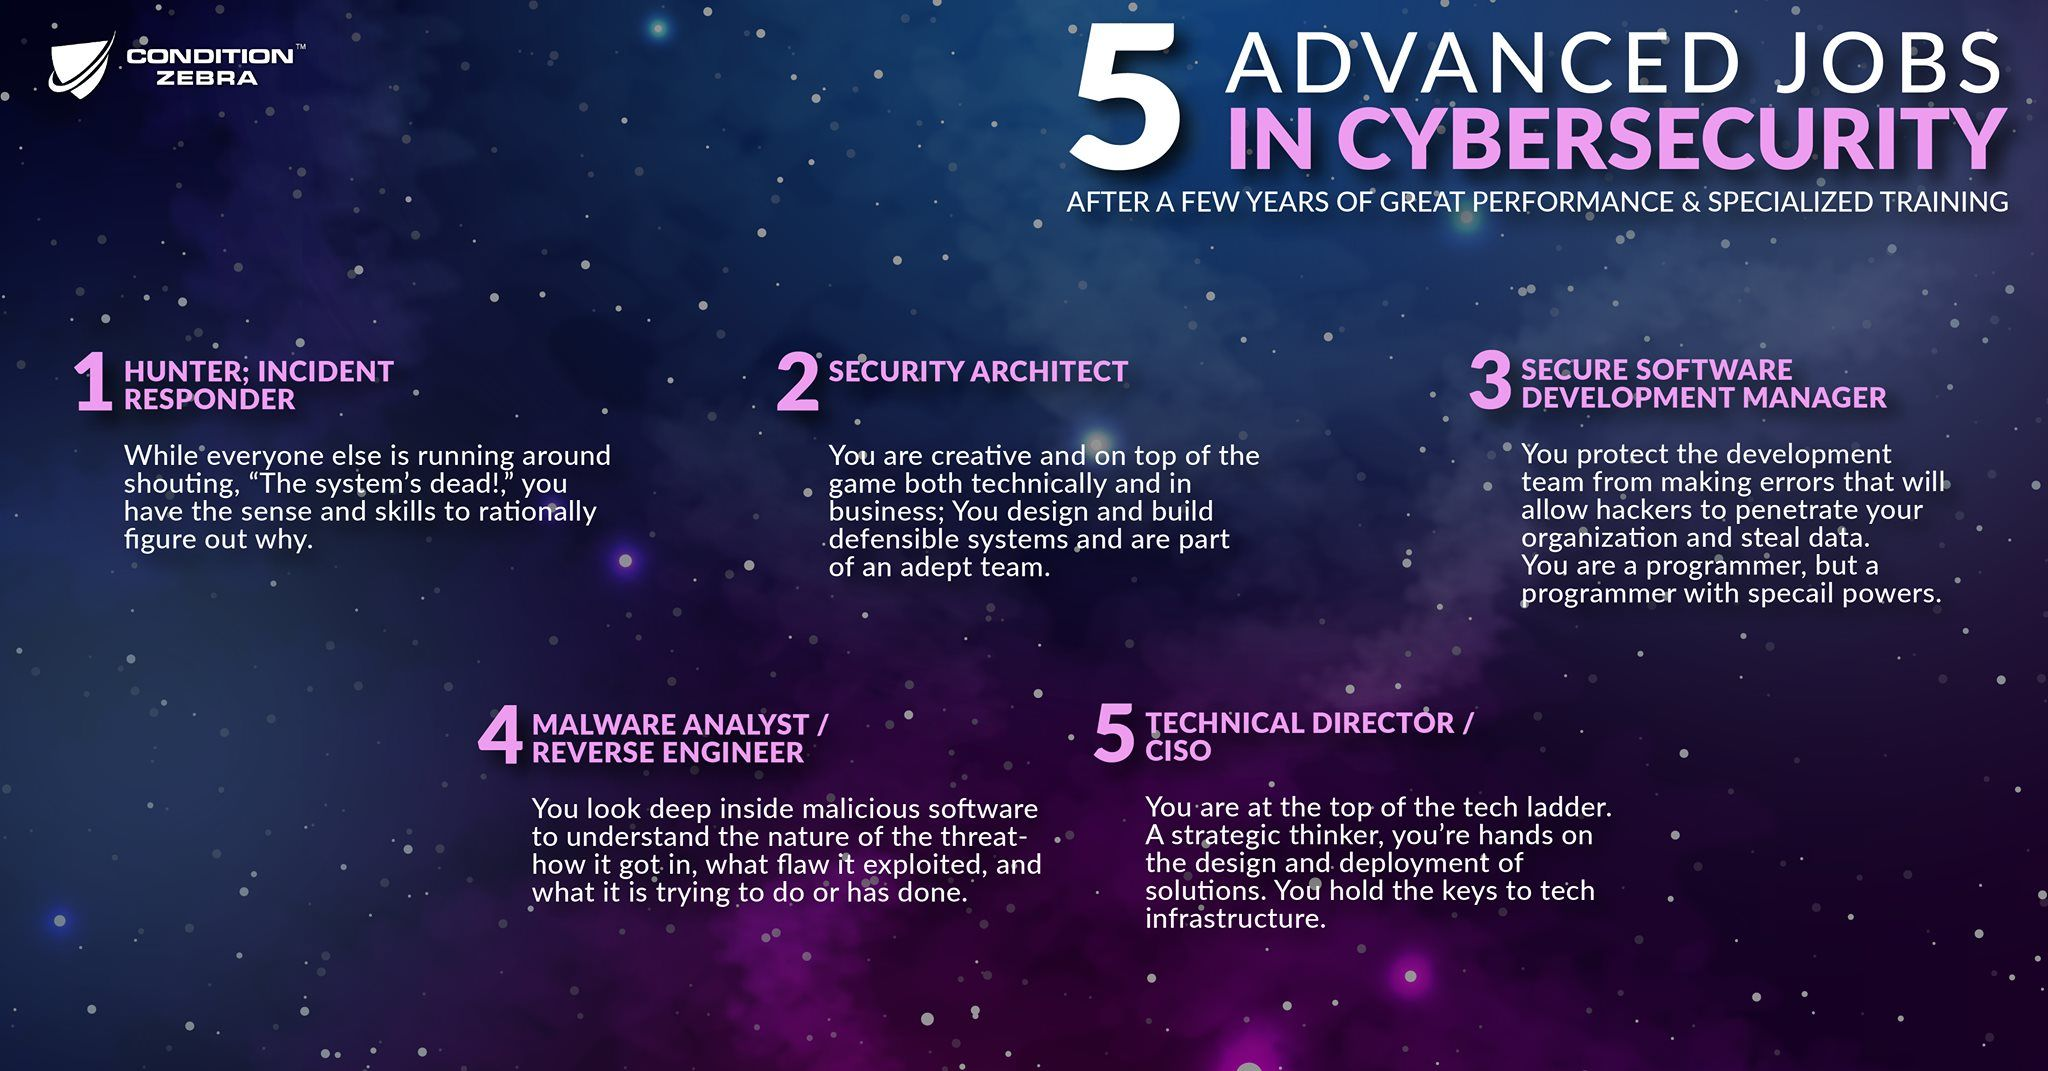 5 Advanced Jobs In Cyber Security Cyber Security Job Posting 1st Responders